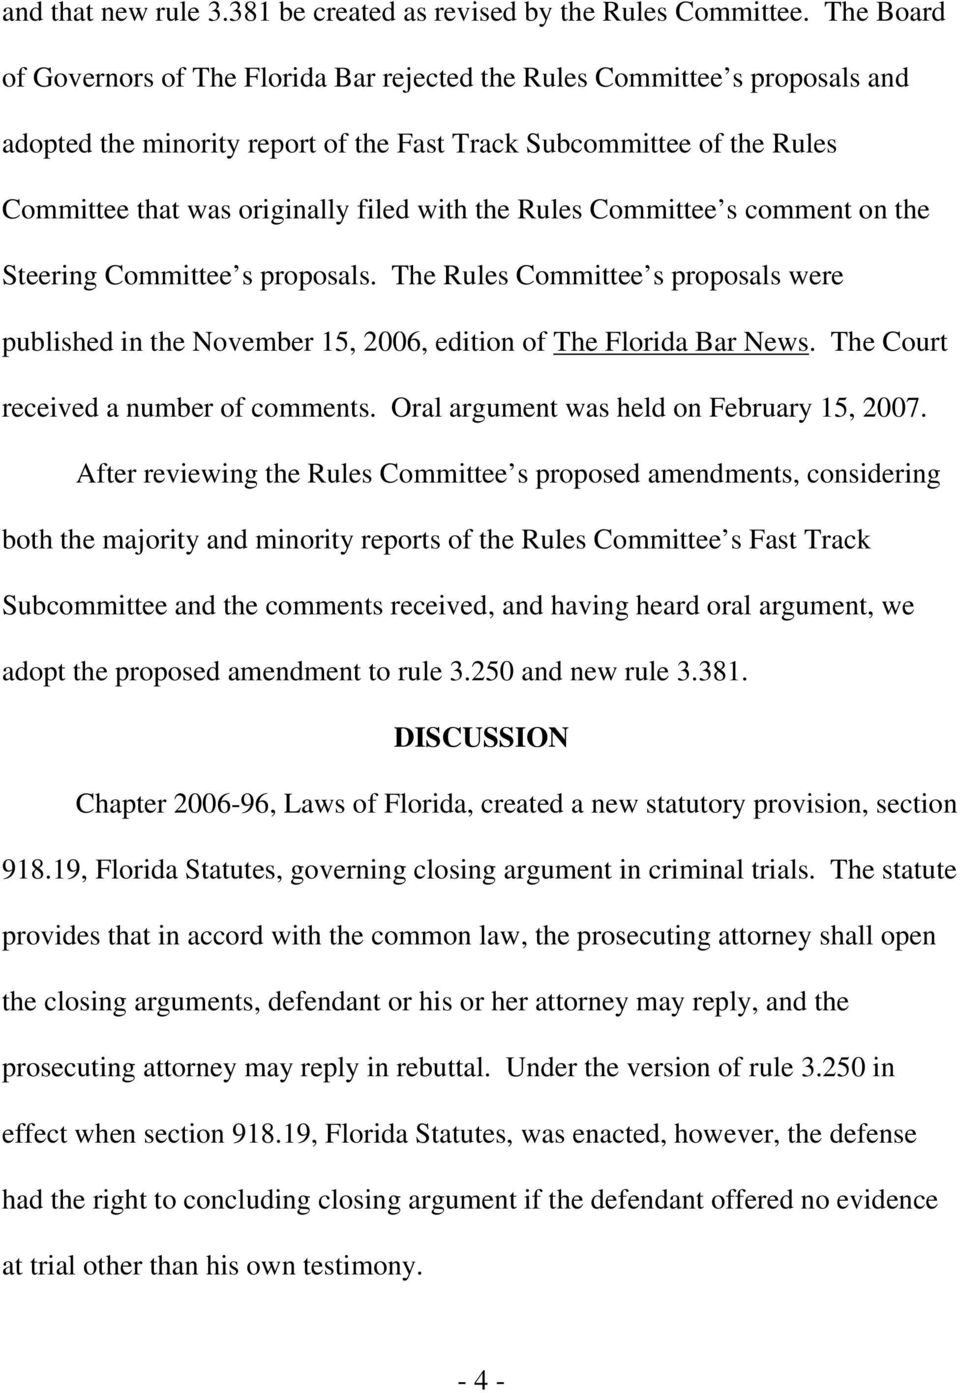 the Rules Committee s comment on the Steering Committee s proposals. The Rules Committee s proposals were published in the November 15, 2006, edition of The Florida Bar News.